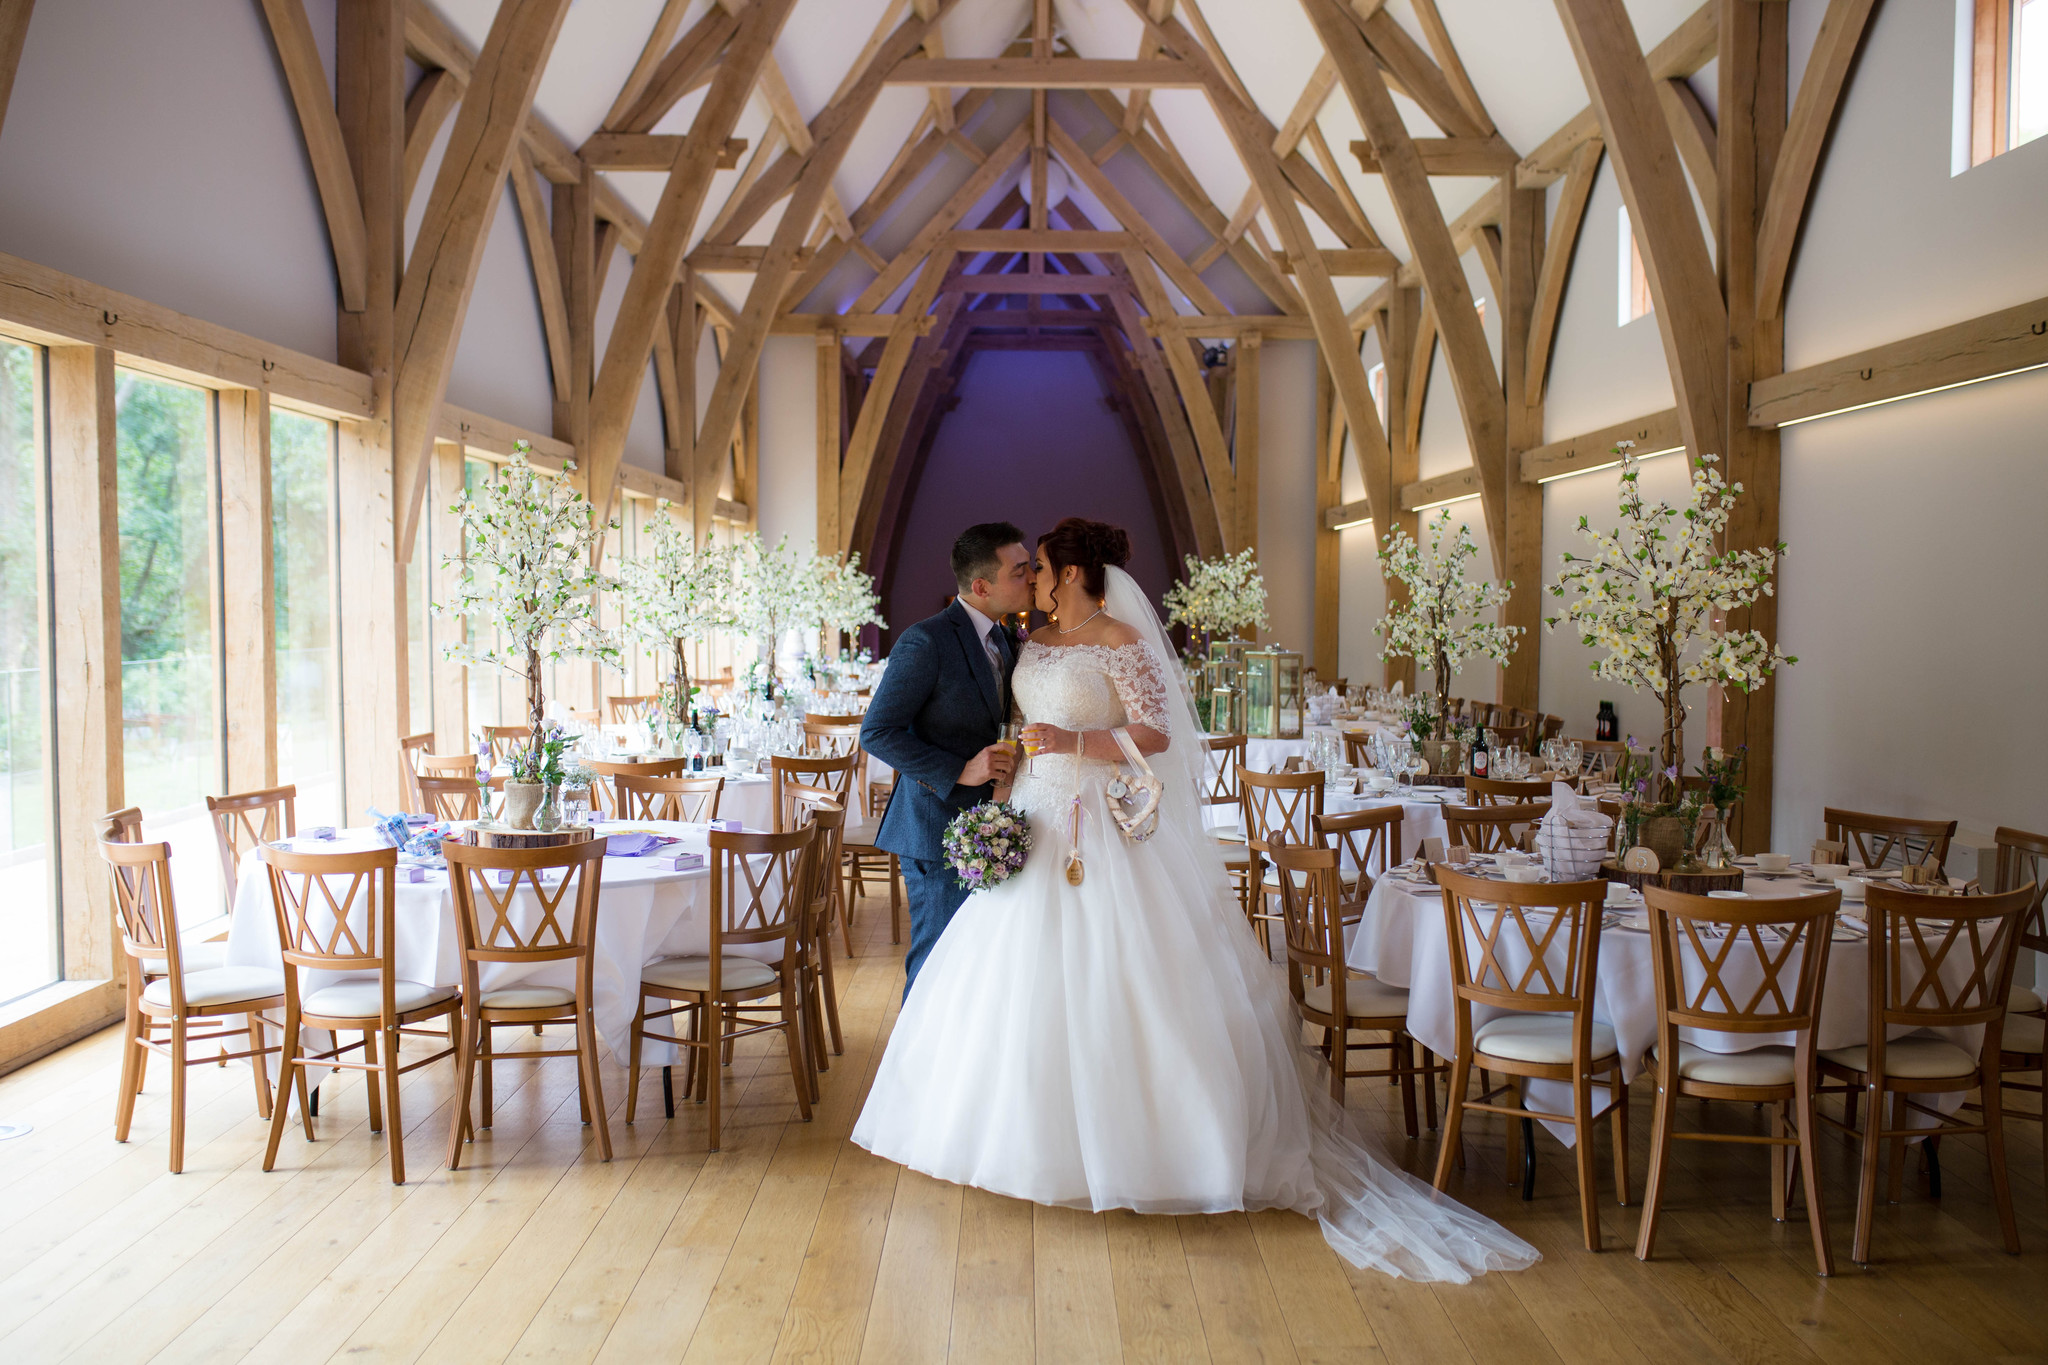 mill barns wedding venue wedding breakfast set up with blossom trees